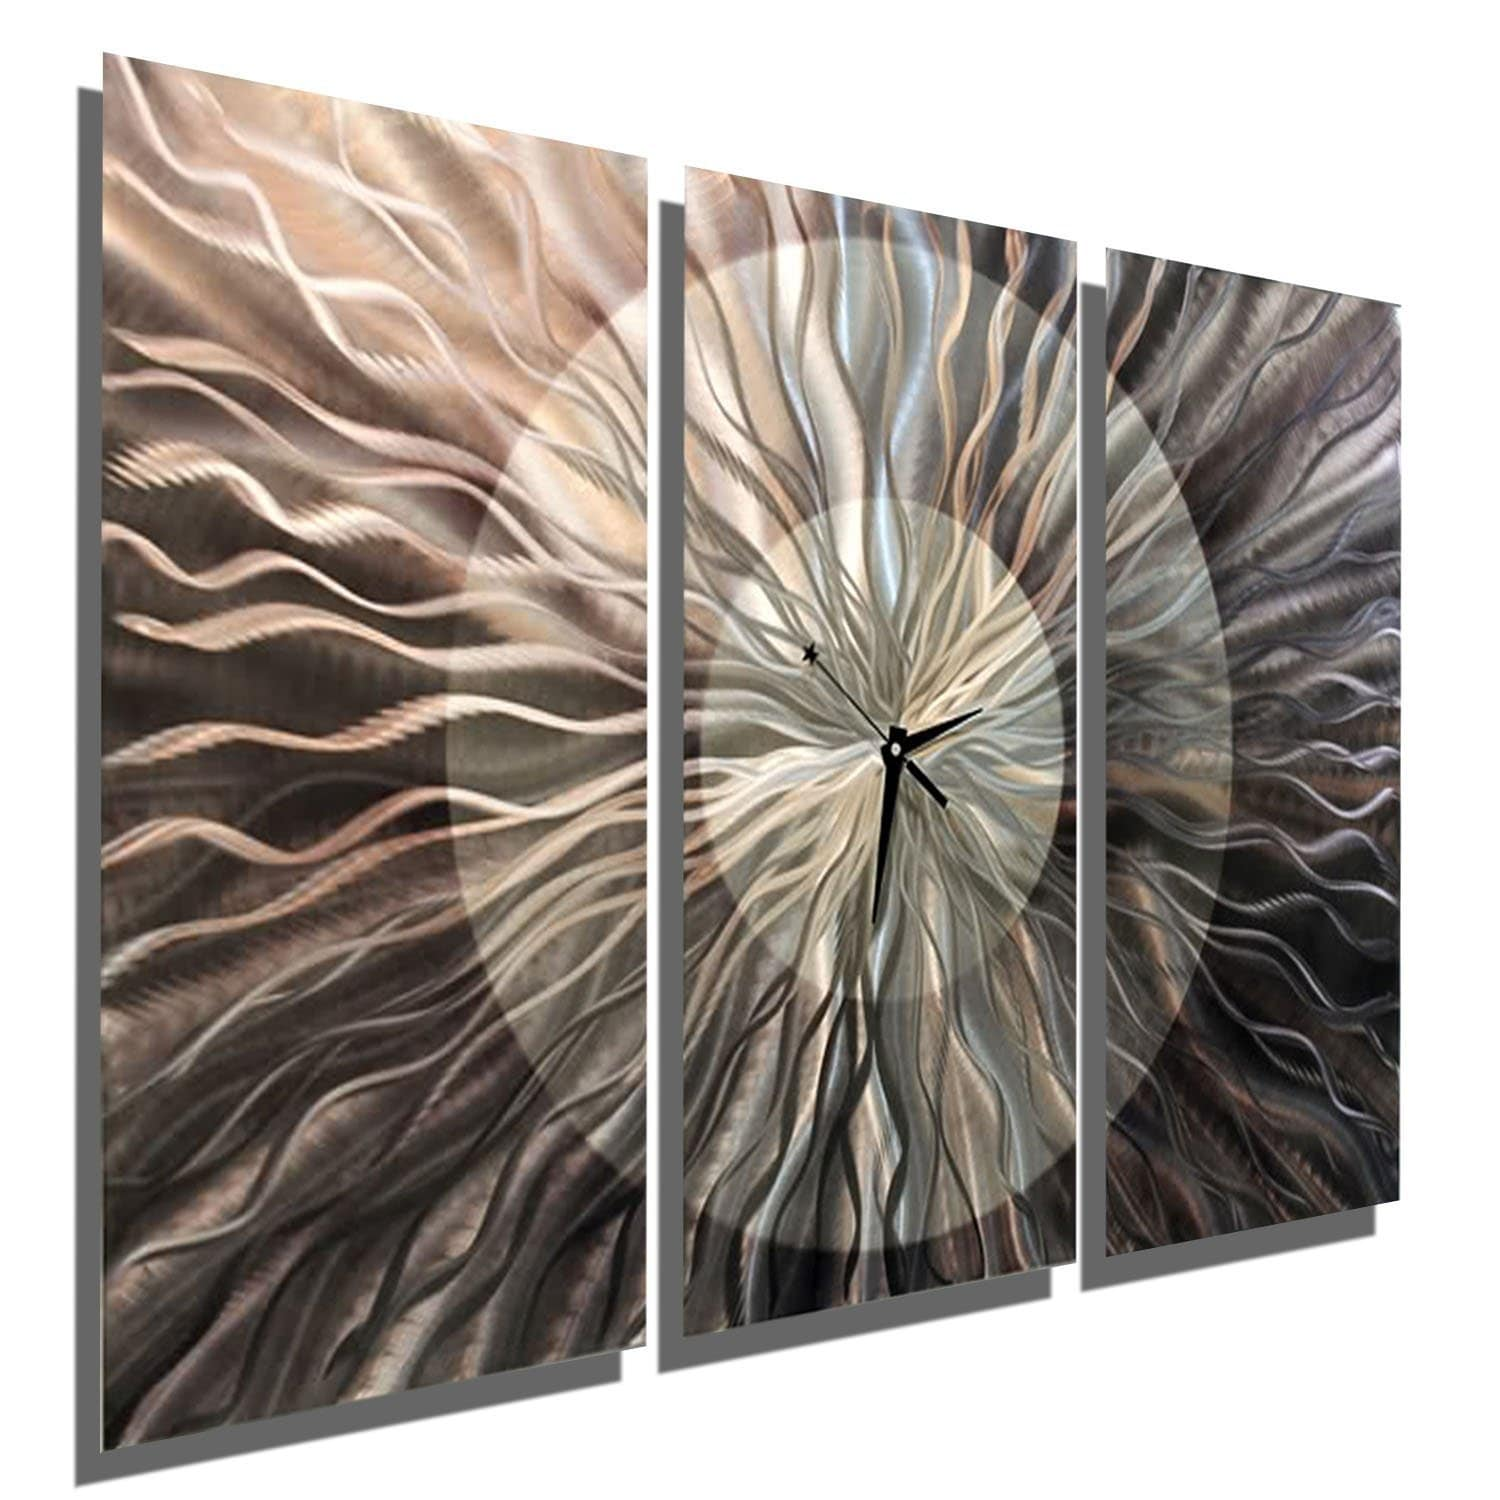 Statements2000 Silver / Charcoal 38-inch Abstract Metal Panel Wall Clock - Obsidian Burst - Thumbnail 0